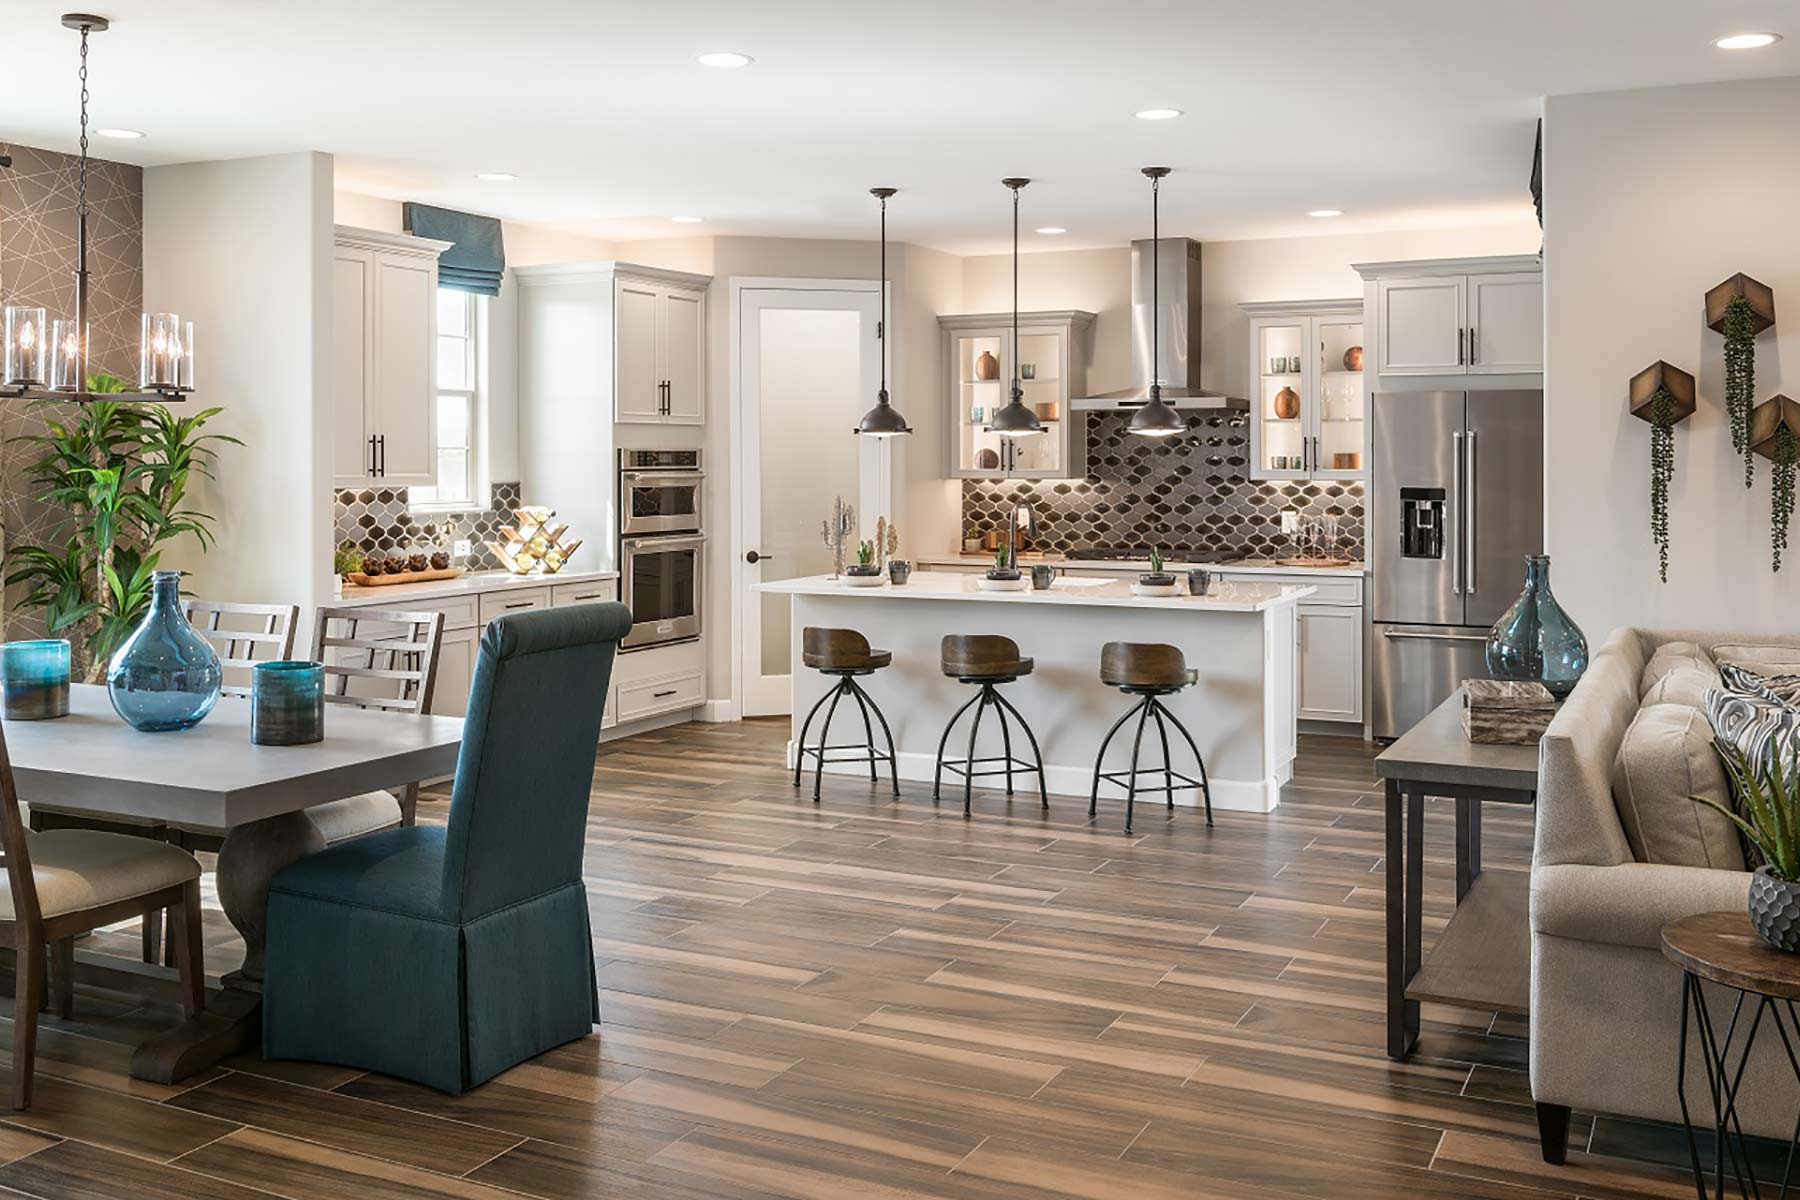 Ocotillo Plan Greatroom at Saguaro Trails in Tucson Arizona by Mattamy Homes